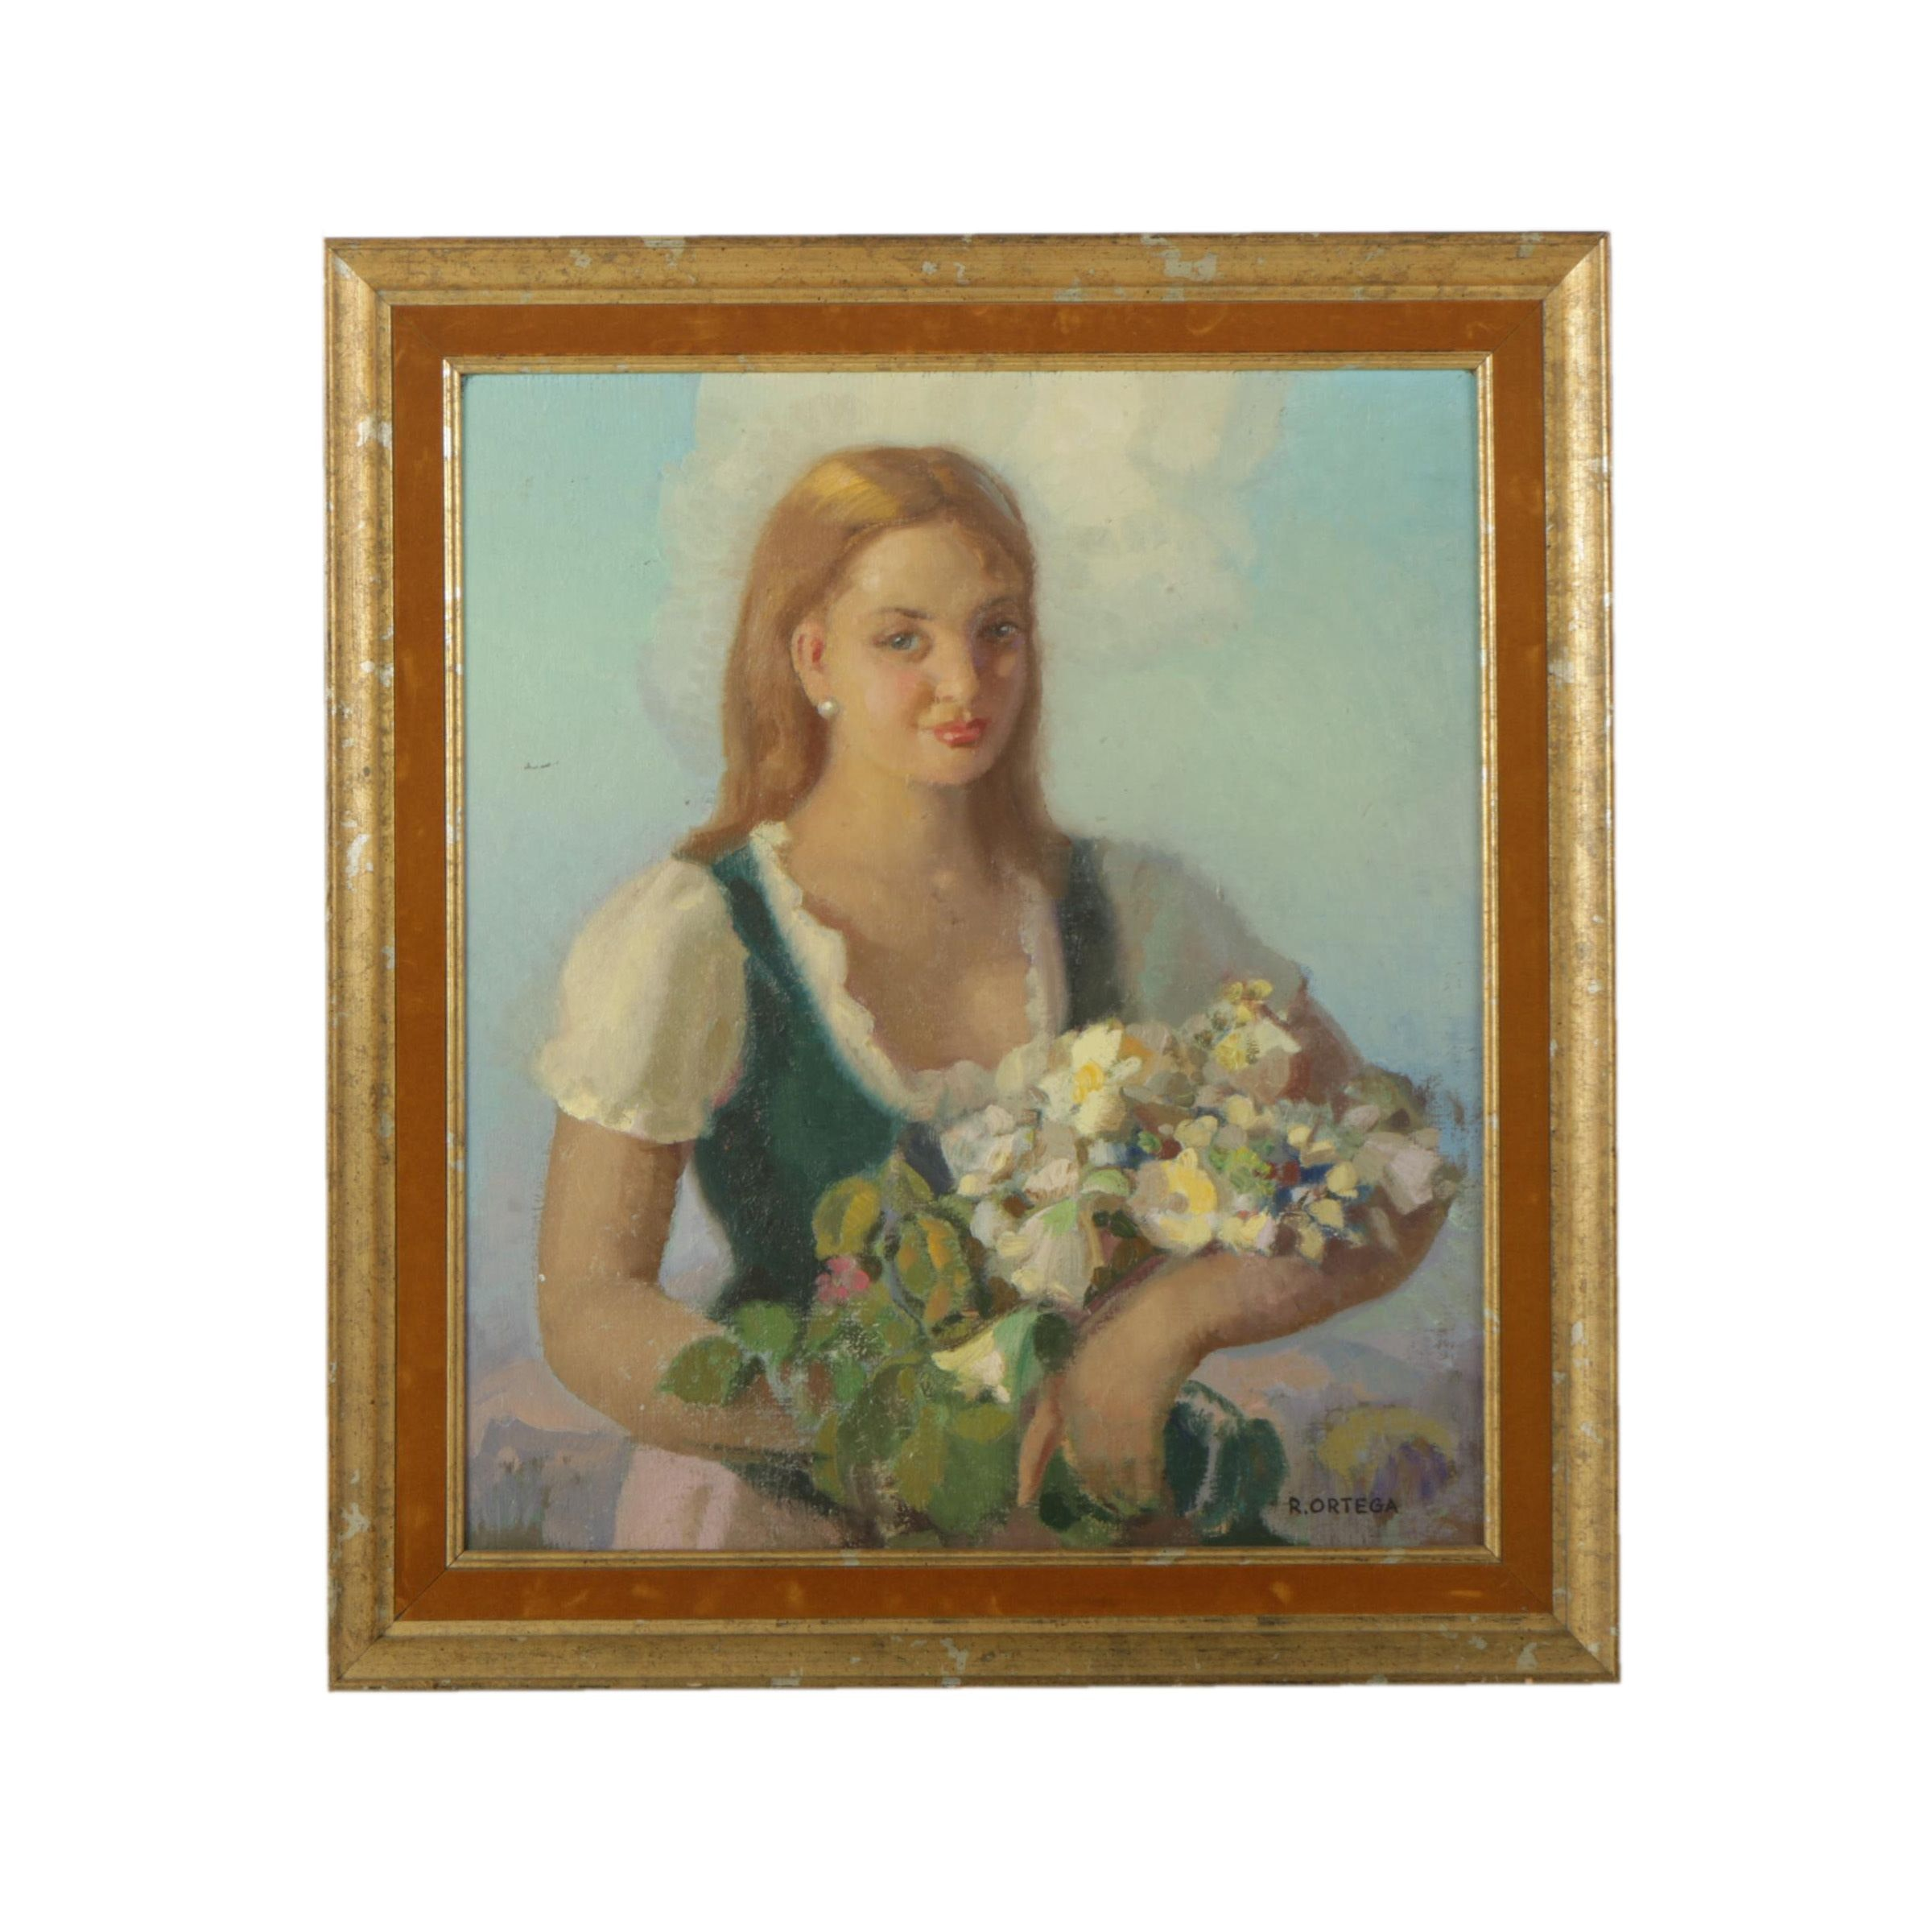 Rafael Ortega Heredia Oil Painting of Girl with Flowers